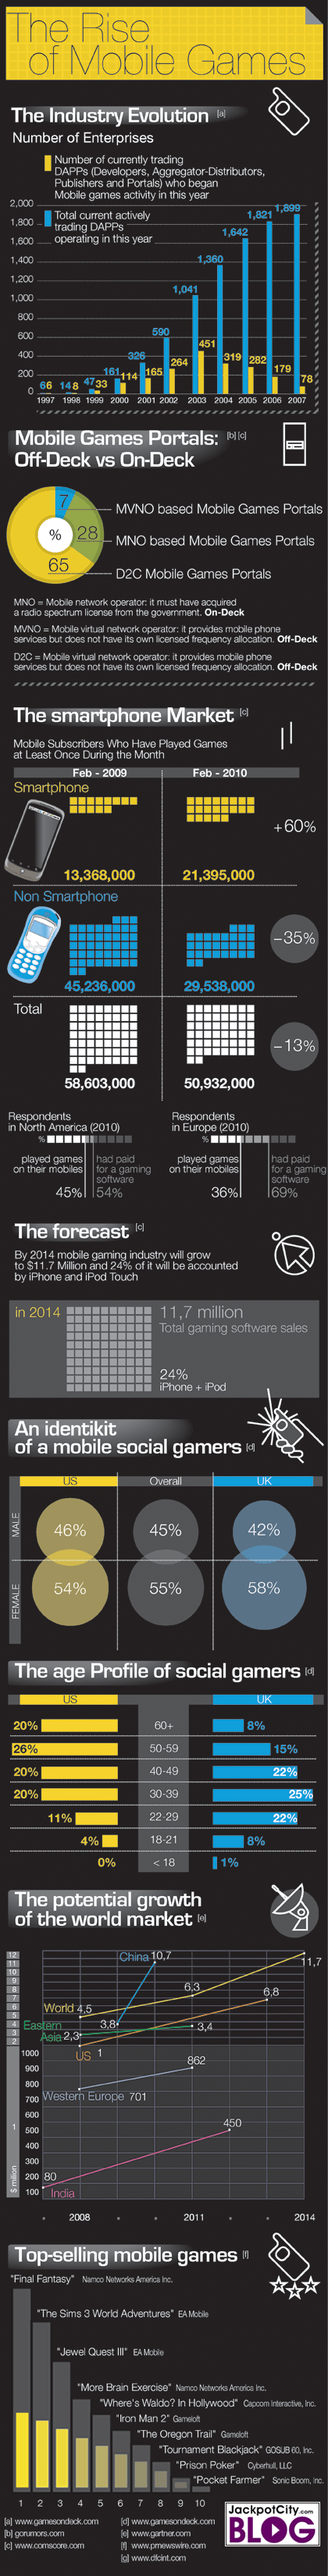 Rise of Mobile Games Infographic